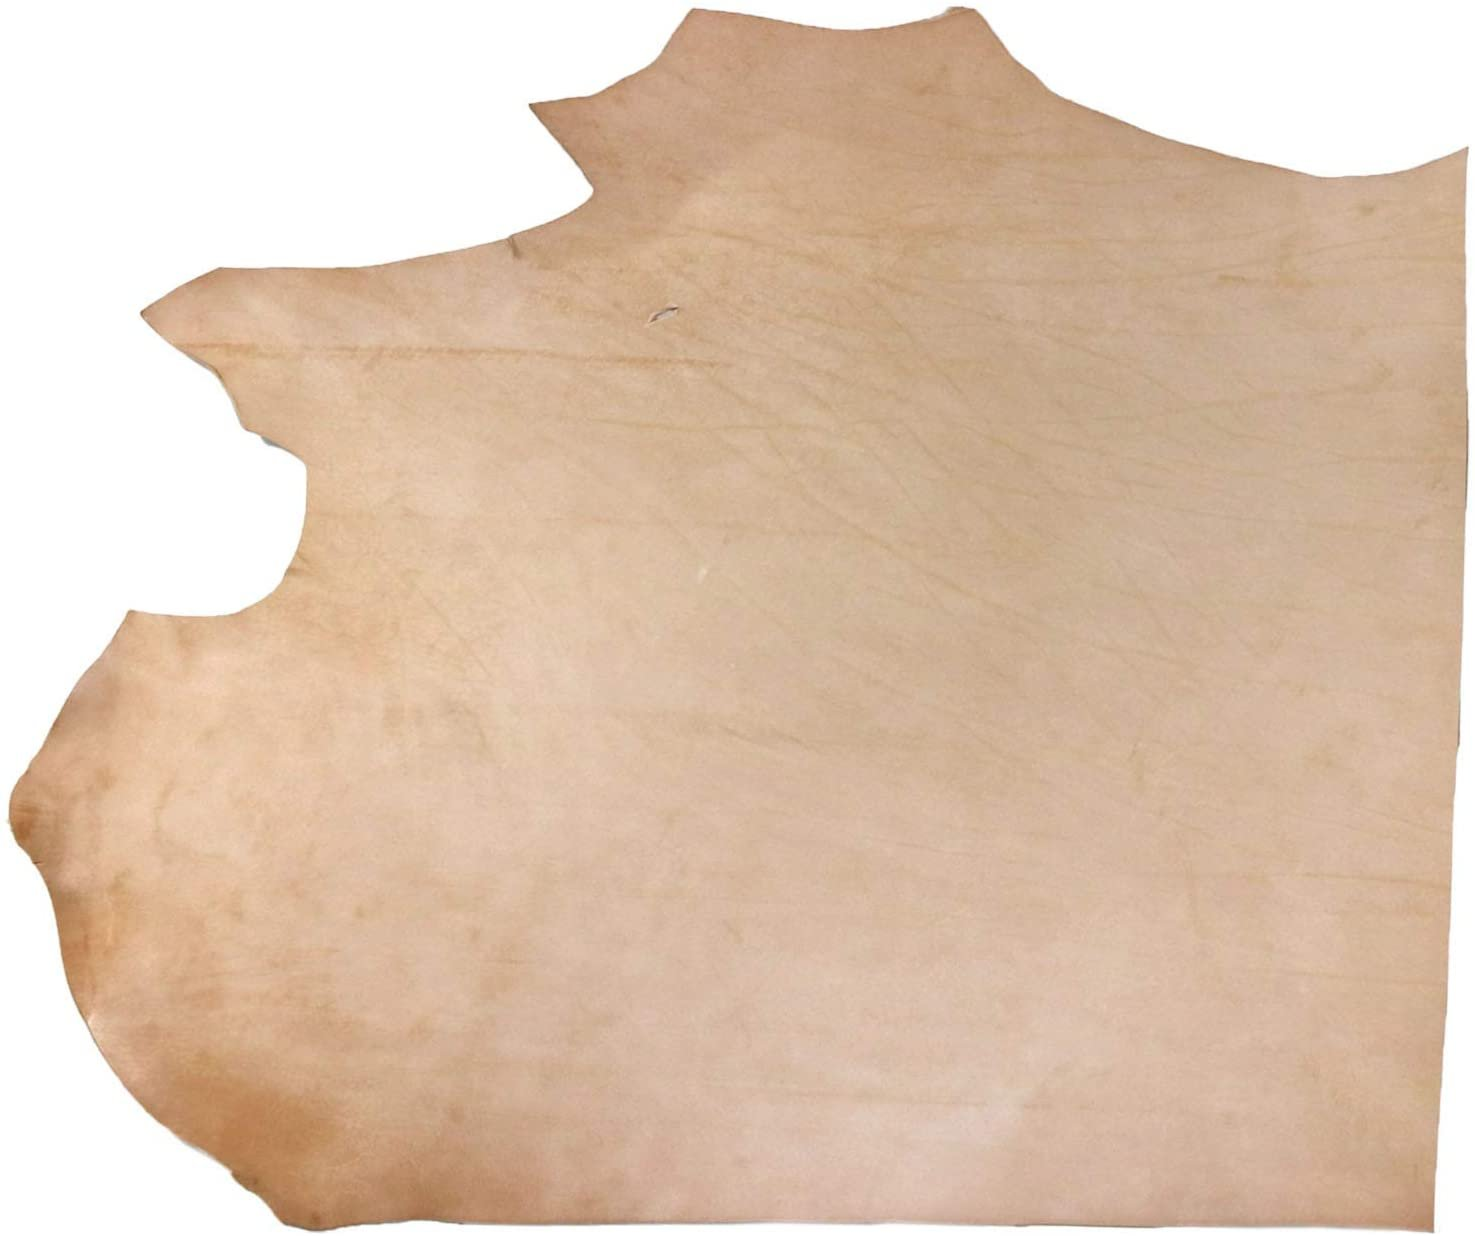 3.2 mm to 3.6 mm Vegetable Veg Tan Tooling Carving Embossing Stamping Full Grain Cowhide Tooling Leather Craft Panel 8-9 oz